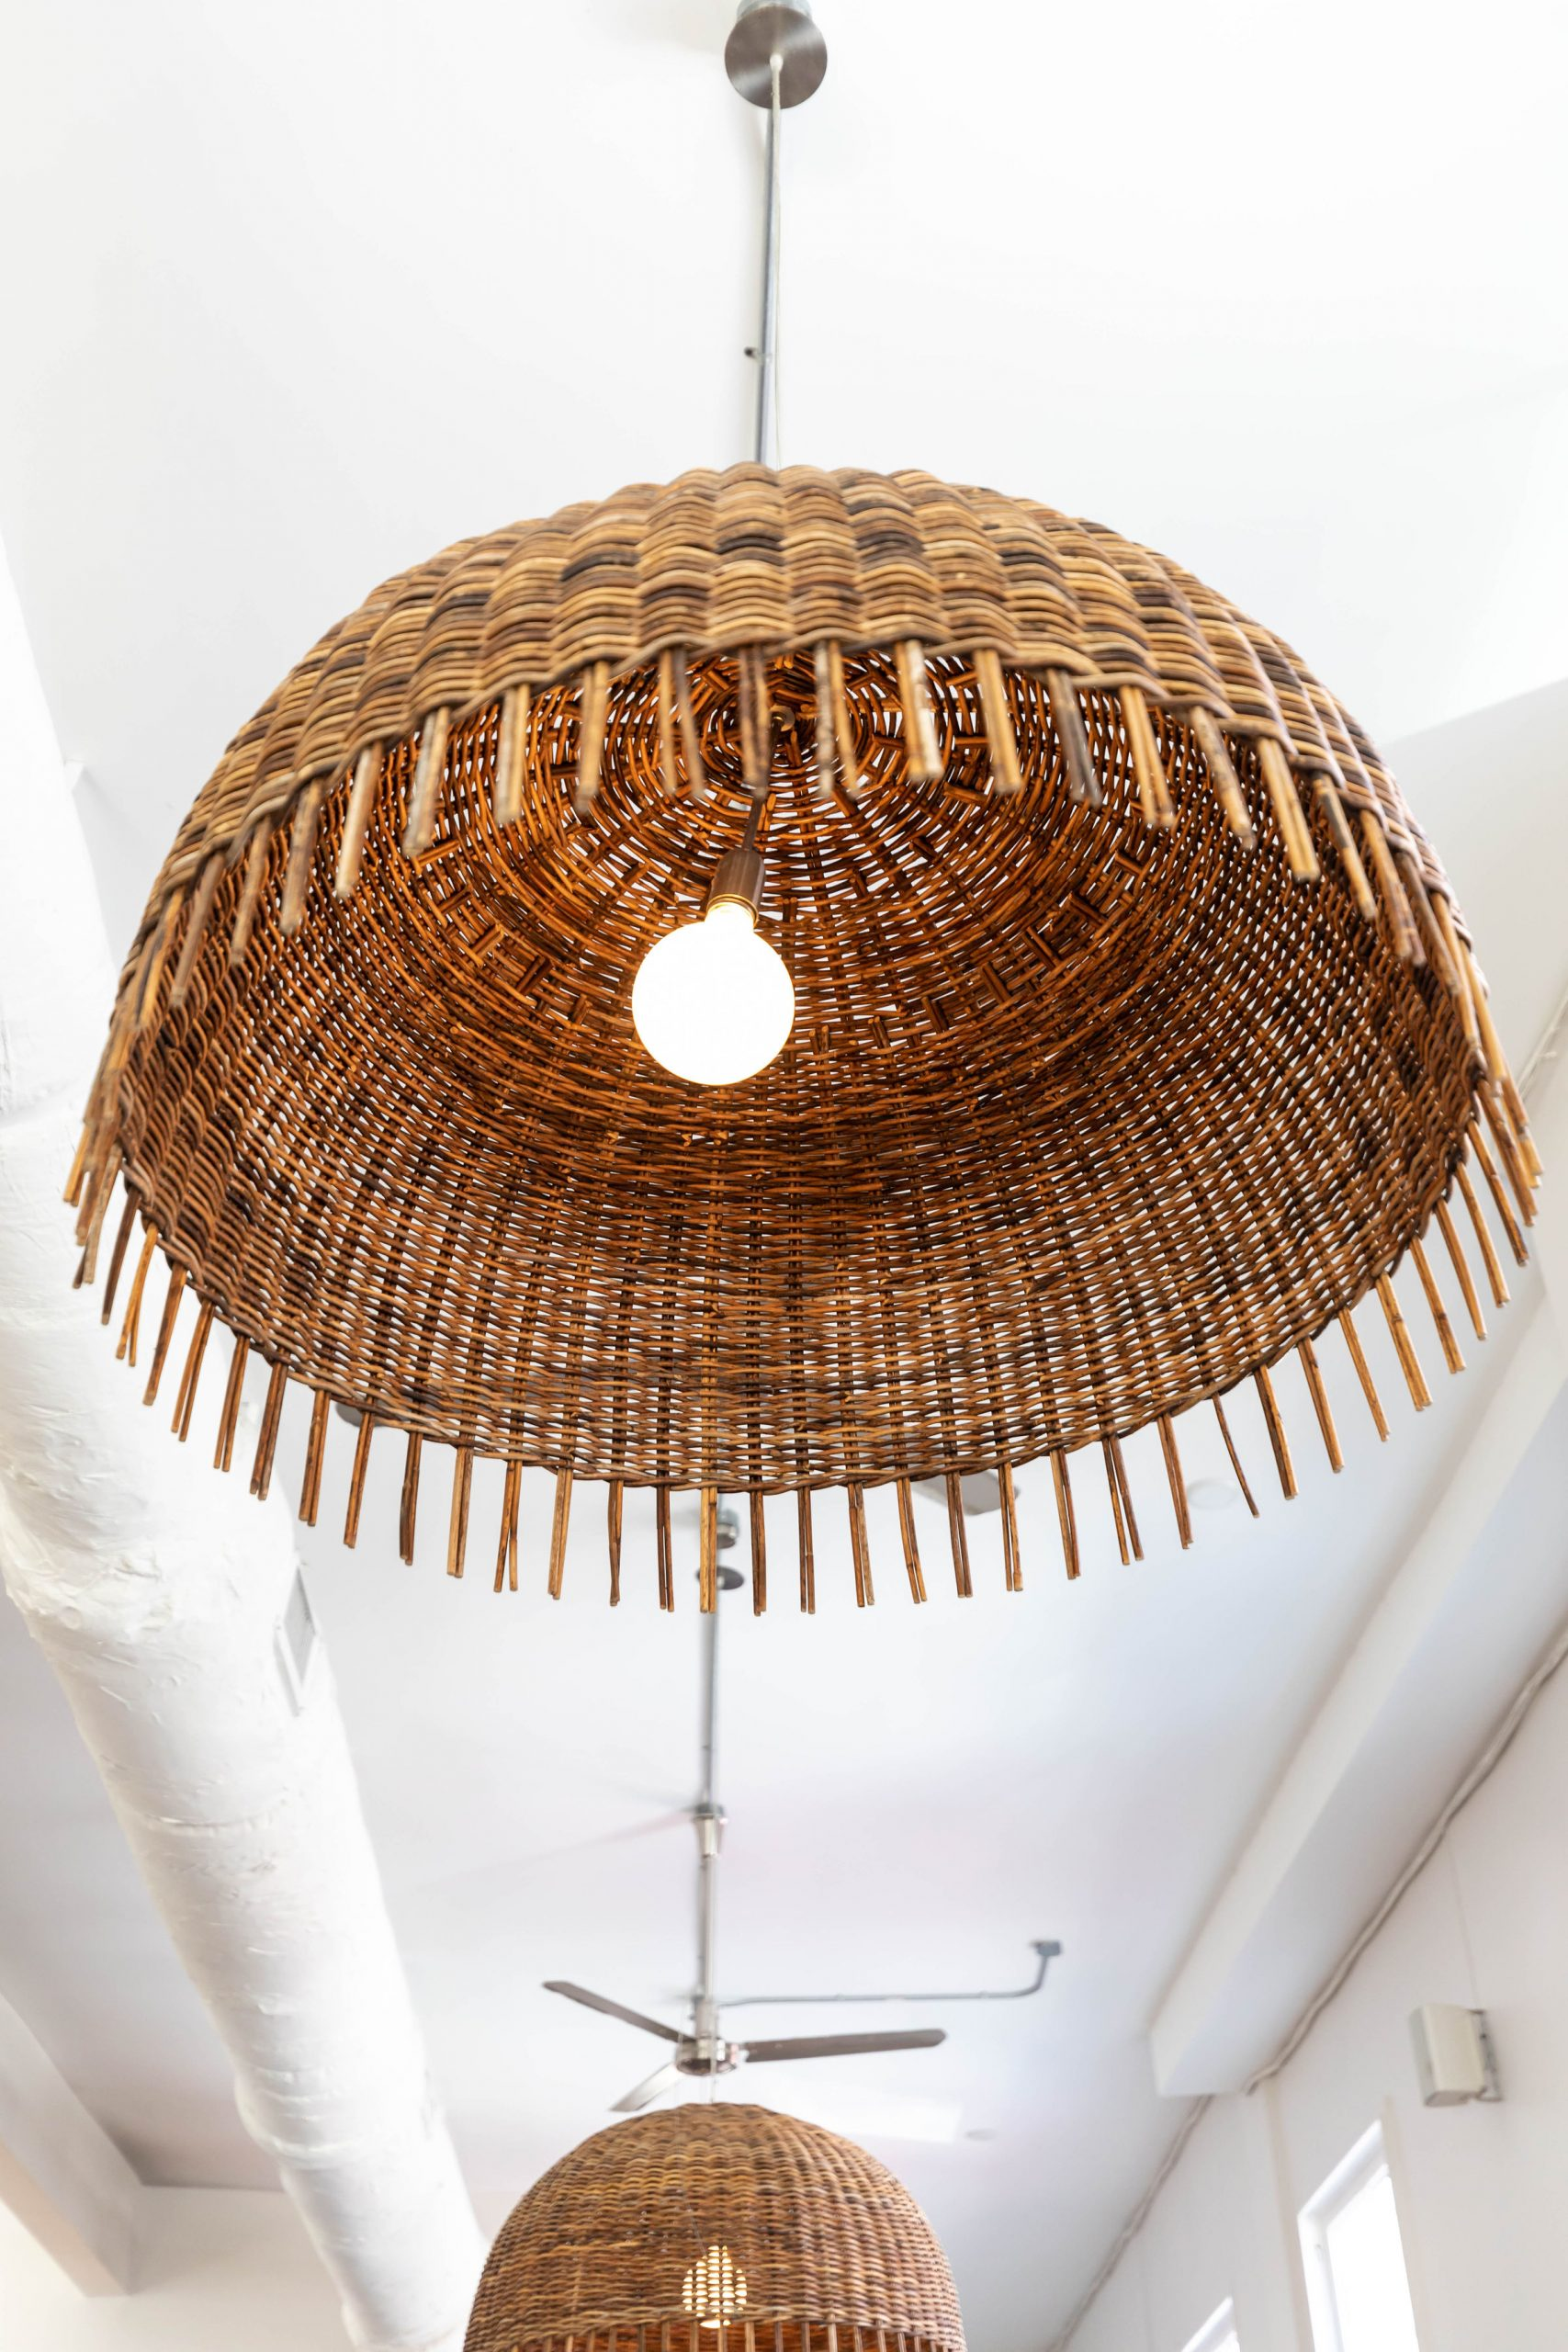 Straw Pendant Lights at Basic Kitchen in Charleston South Carolina Plant Based Seasonal Local Cuisine Photographed by Annie Fairfax